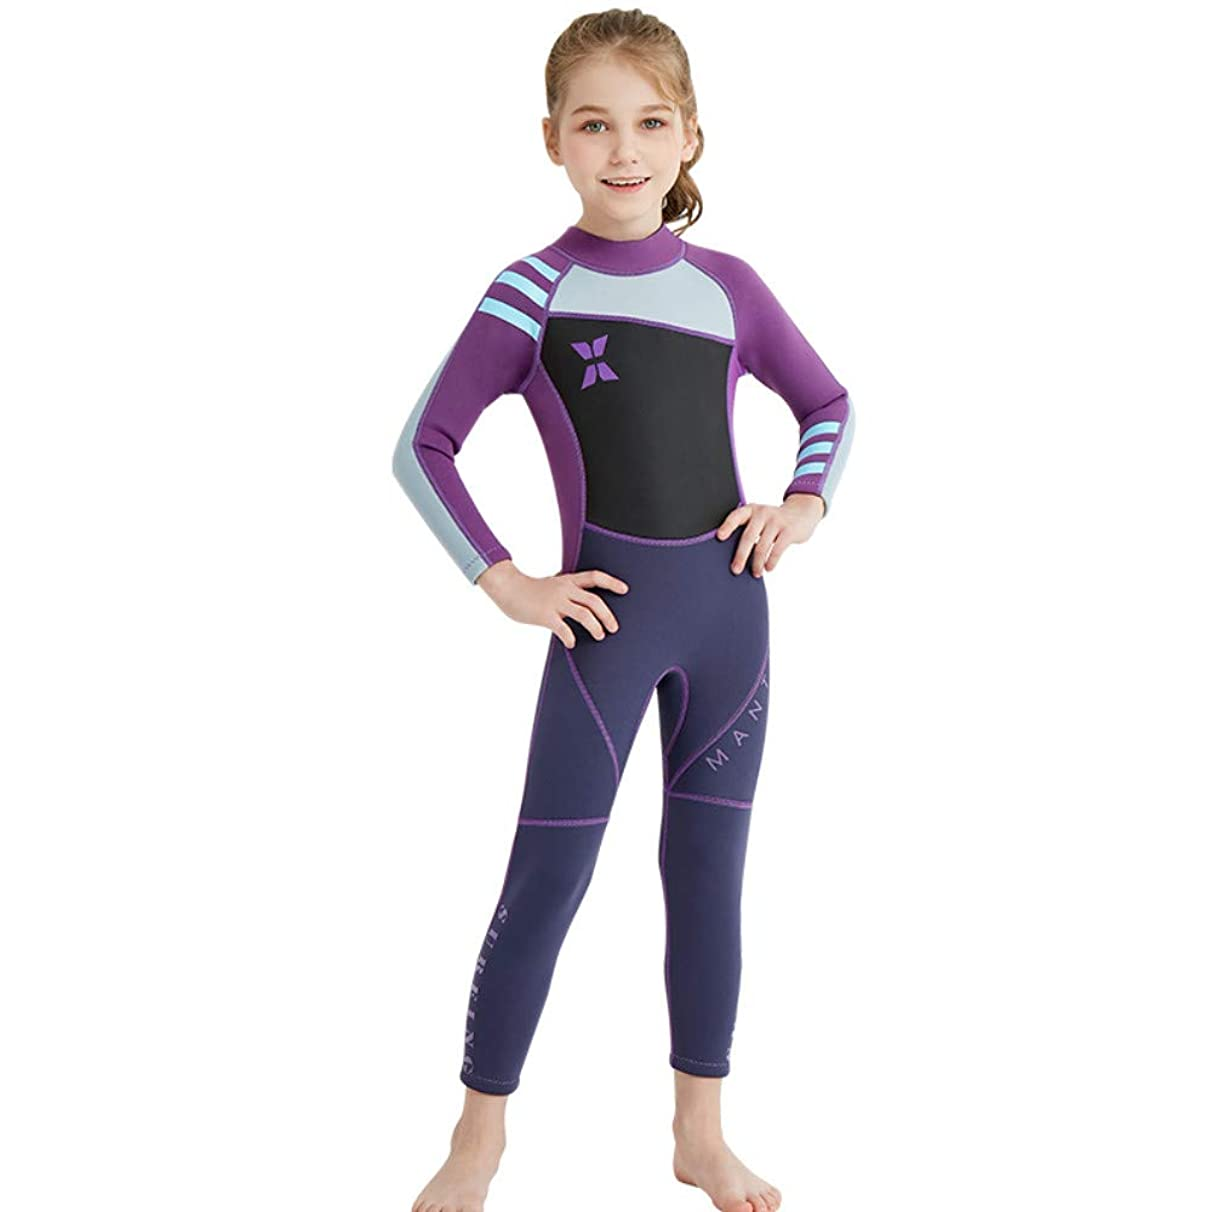 DIVE & SAIL Kids 2.5MM Neoprene Wetsuit Long Sleeve Full Body UV Protection Boys & Girls for Scuba Diving Snorkeling Swimming Fishing Surfing (Thick)